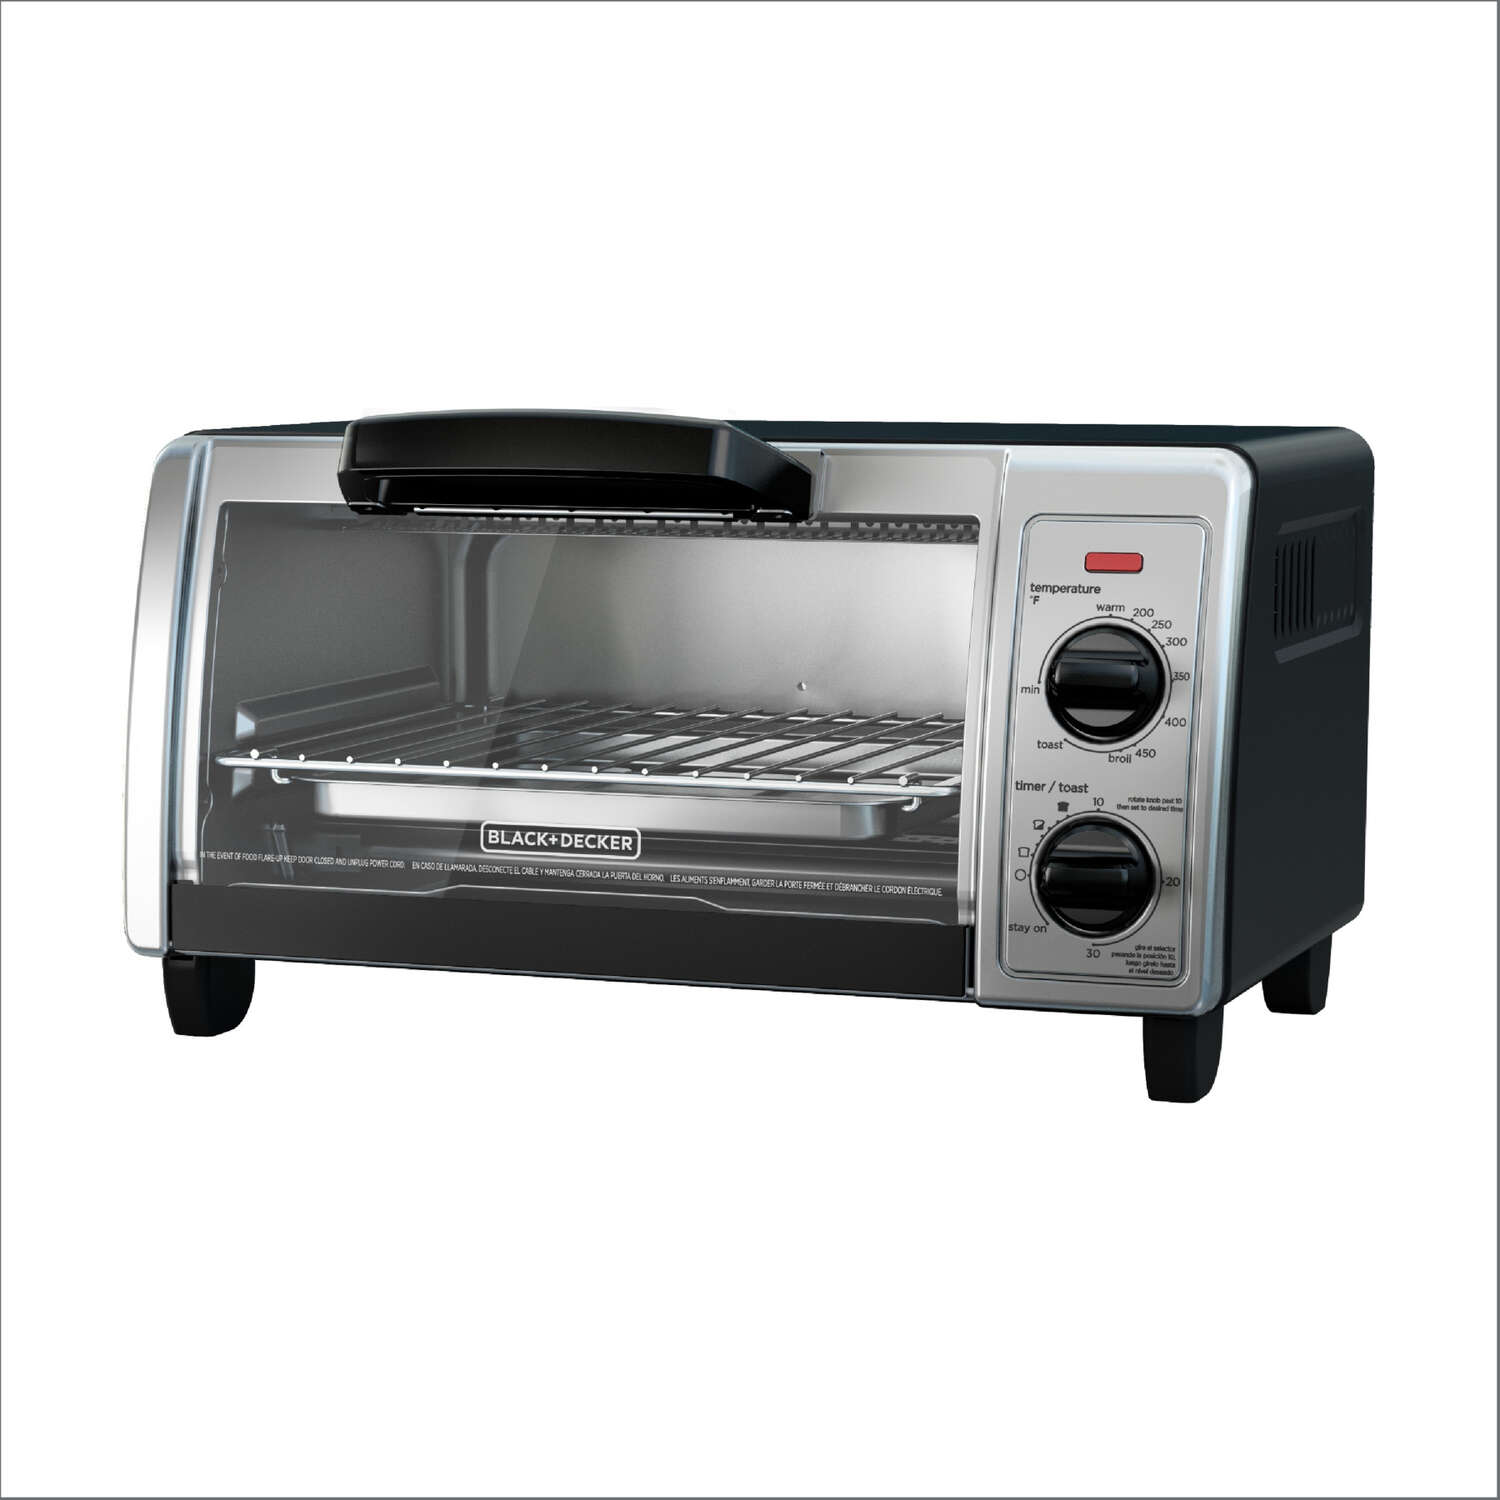 Black and Decker Stainless Steel Black/Silver 4 slot ...